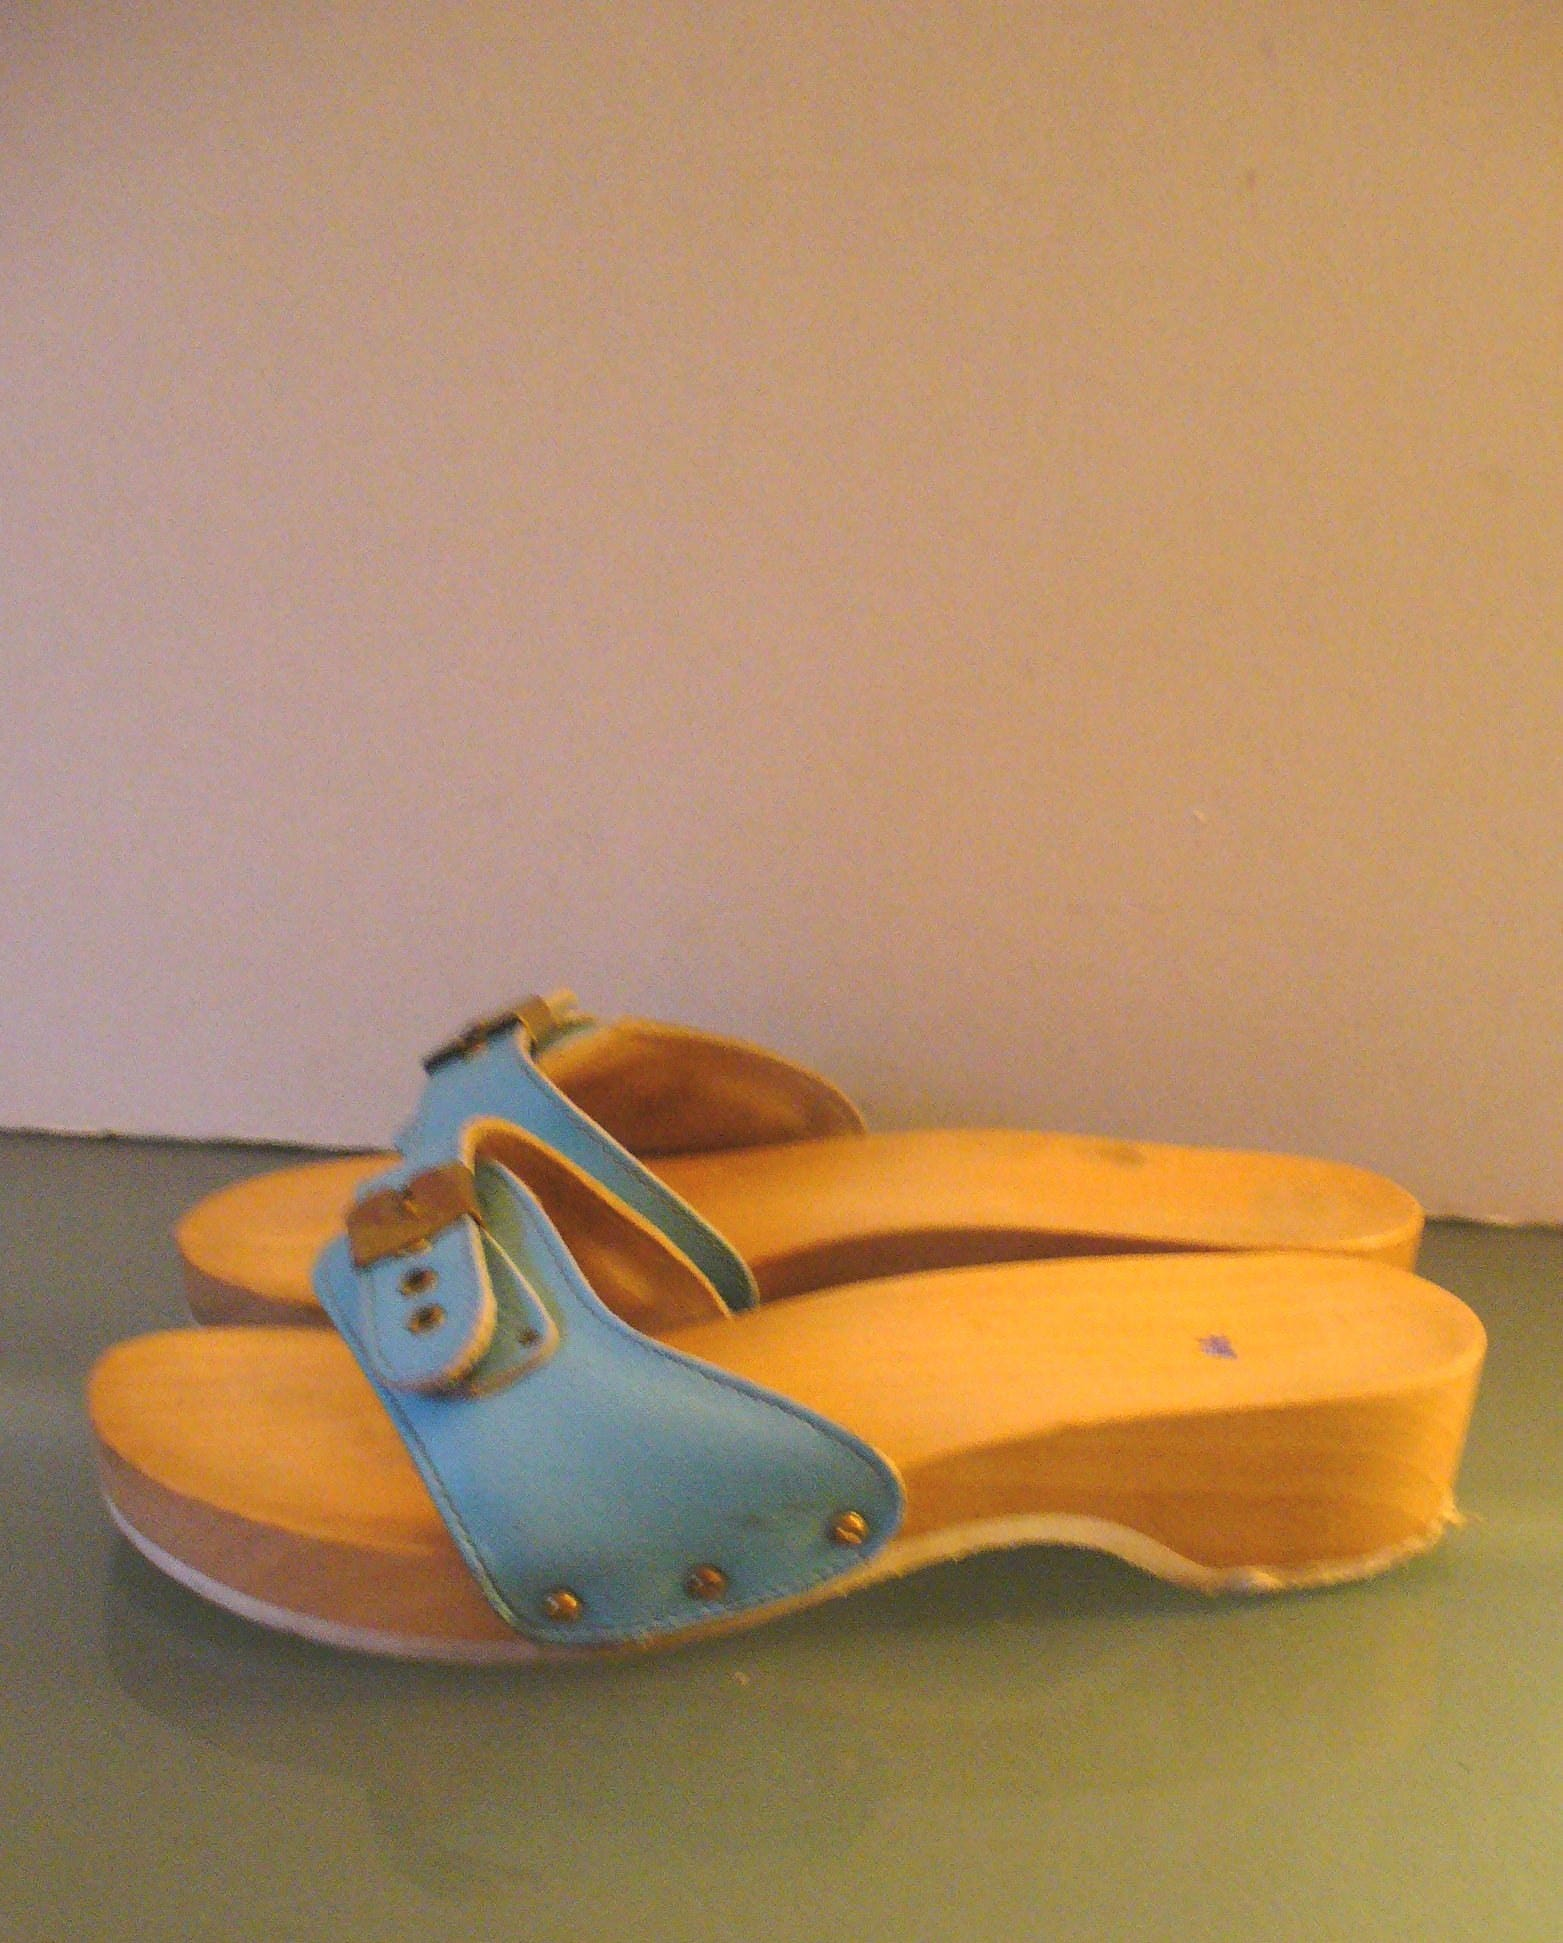 Blue Sandals Baby Exercise Exercise Blue DrScholl Blue Sandals Baby DrScholl Baby DrScholl N0O8nyvmPw